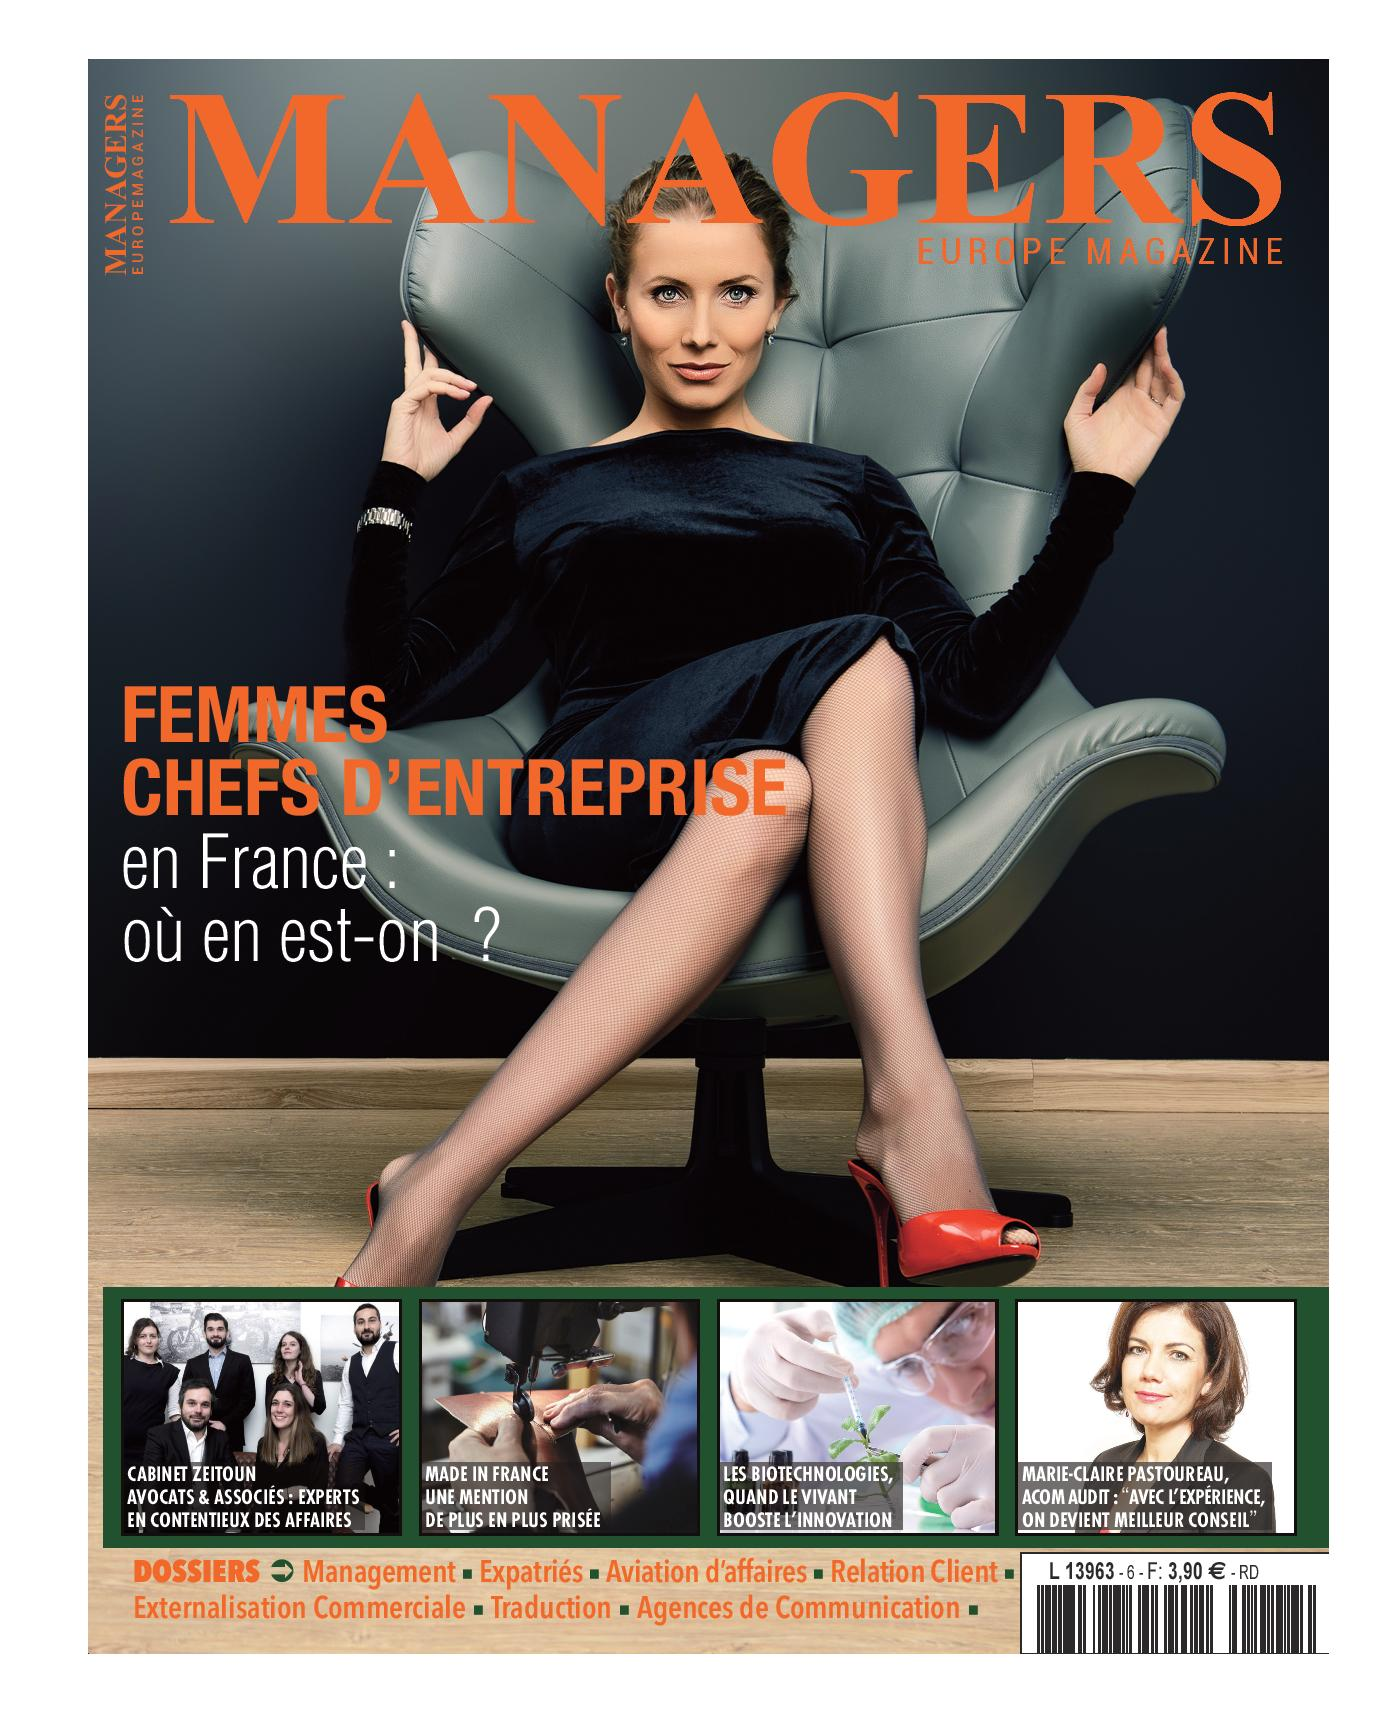 PZA_Couverture_Managers